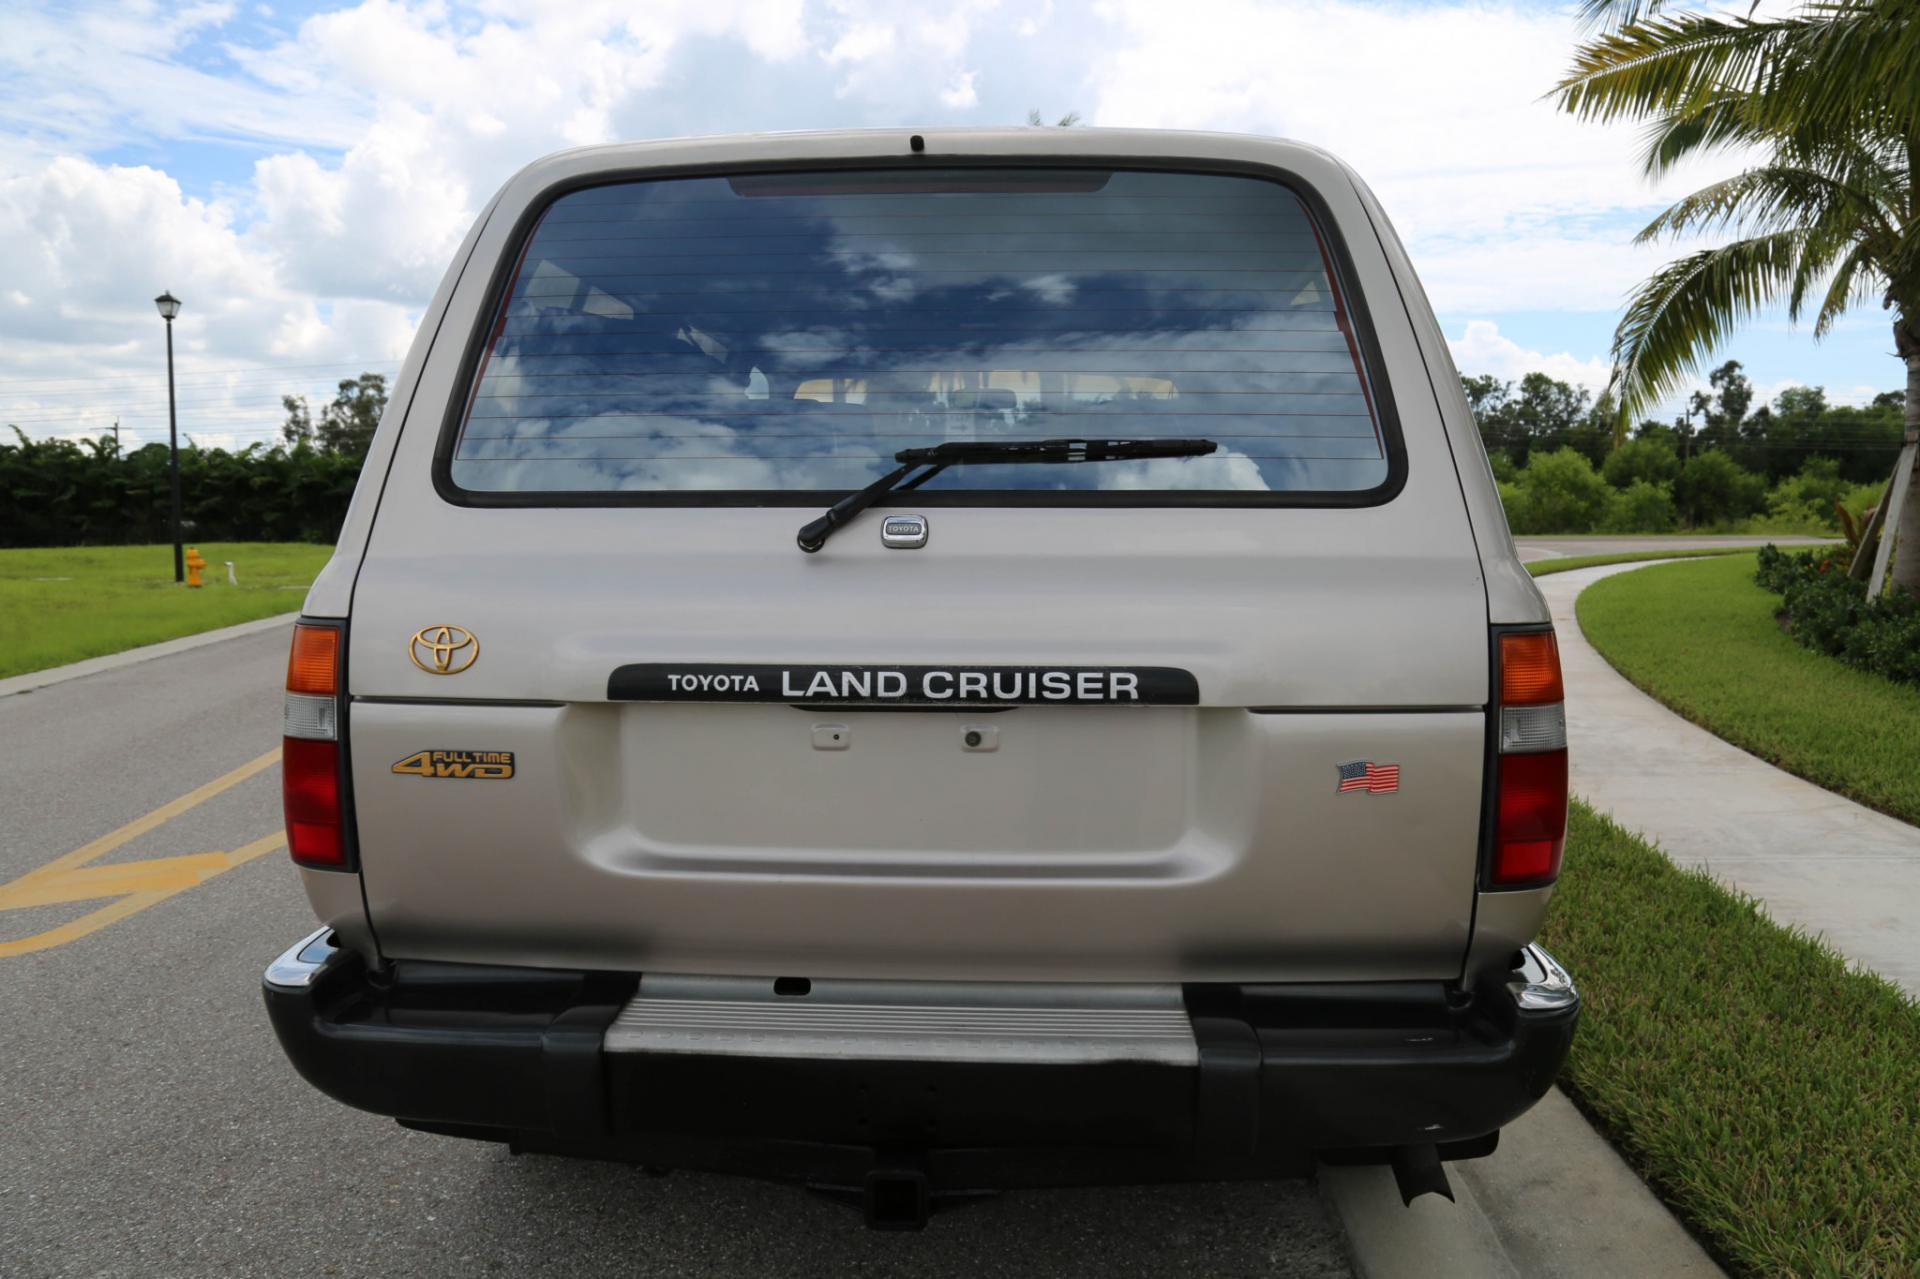 Used 1994  Land Crusier for sale Sold at Muscle Cars for Sale Inc. in Fort Myers FL 33912 5